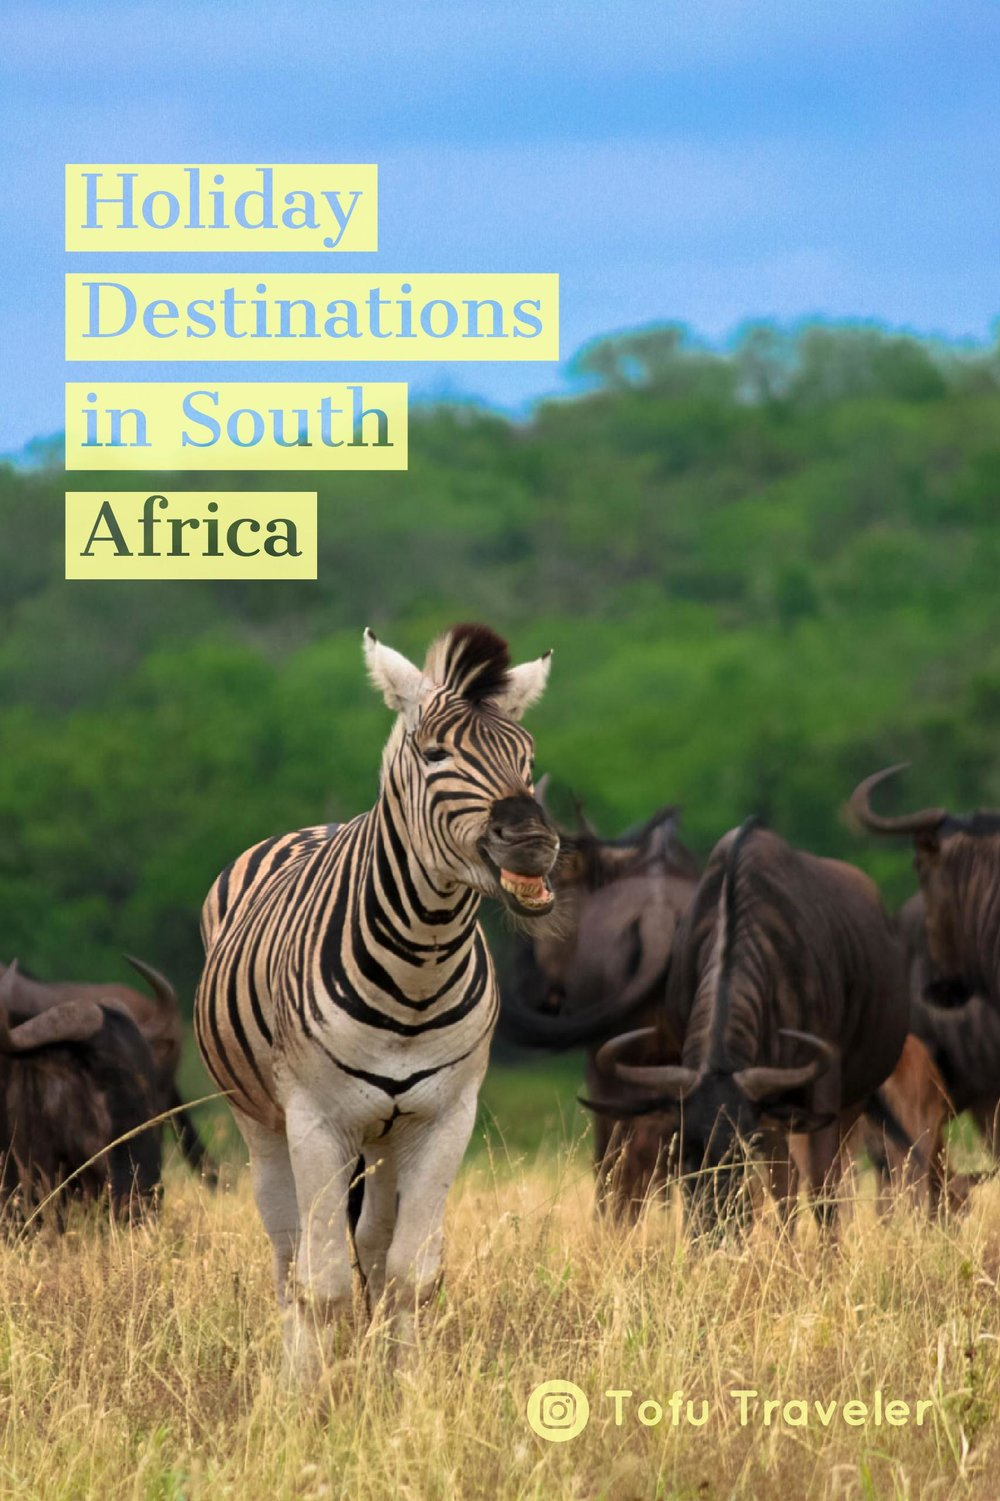 Holiday Destinations in South Africa